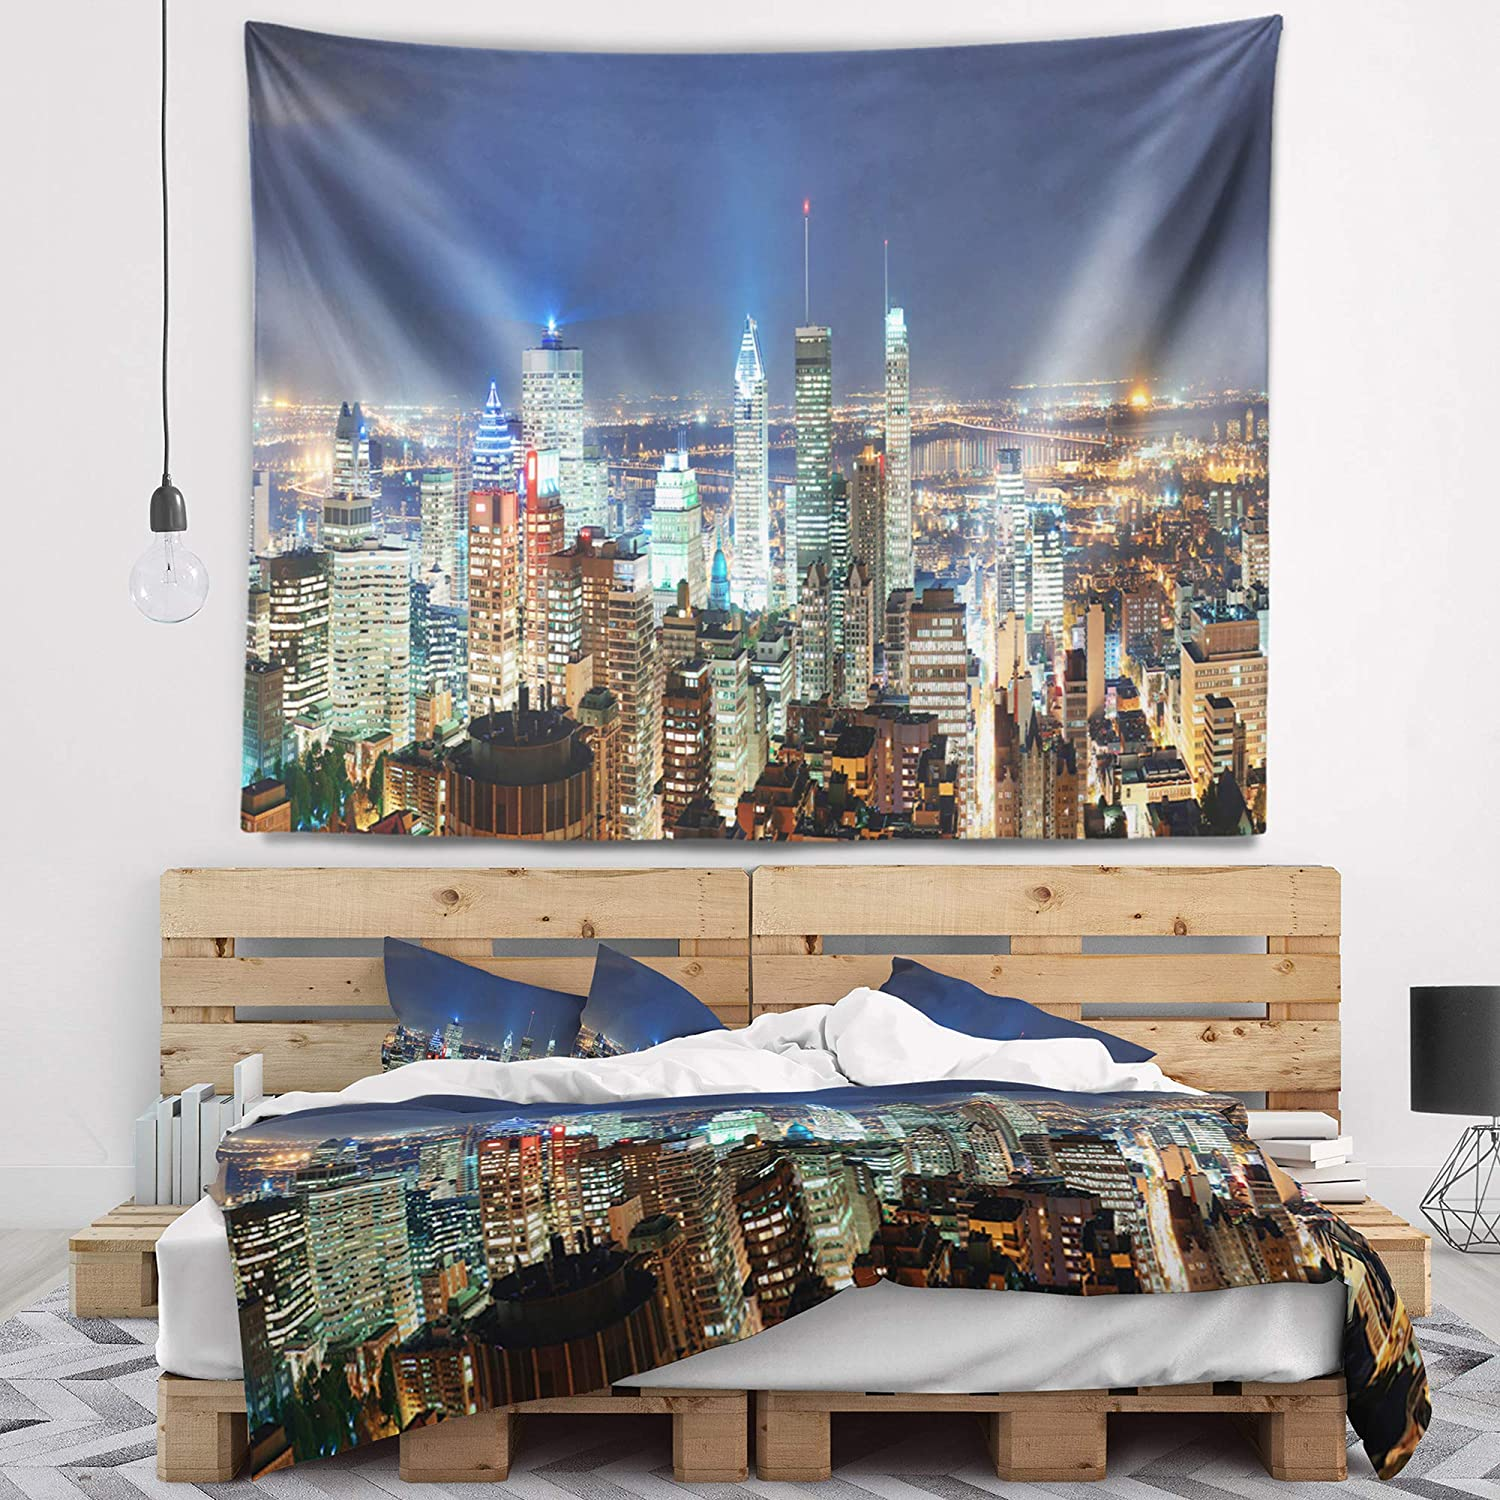 Designart TAP15393-80-68 Montreal at Dusk Panorama Landscape Tapestry Blanket D/écor Wall Art for Home and Office Created on Lightweight Polyester Fabric x Large: 80 in x 68 in